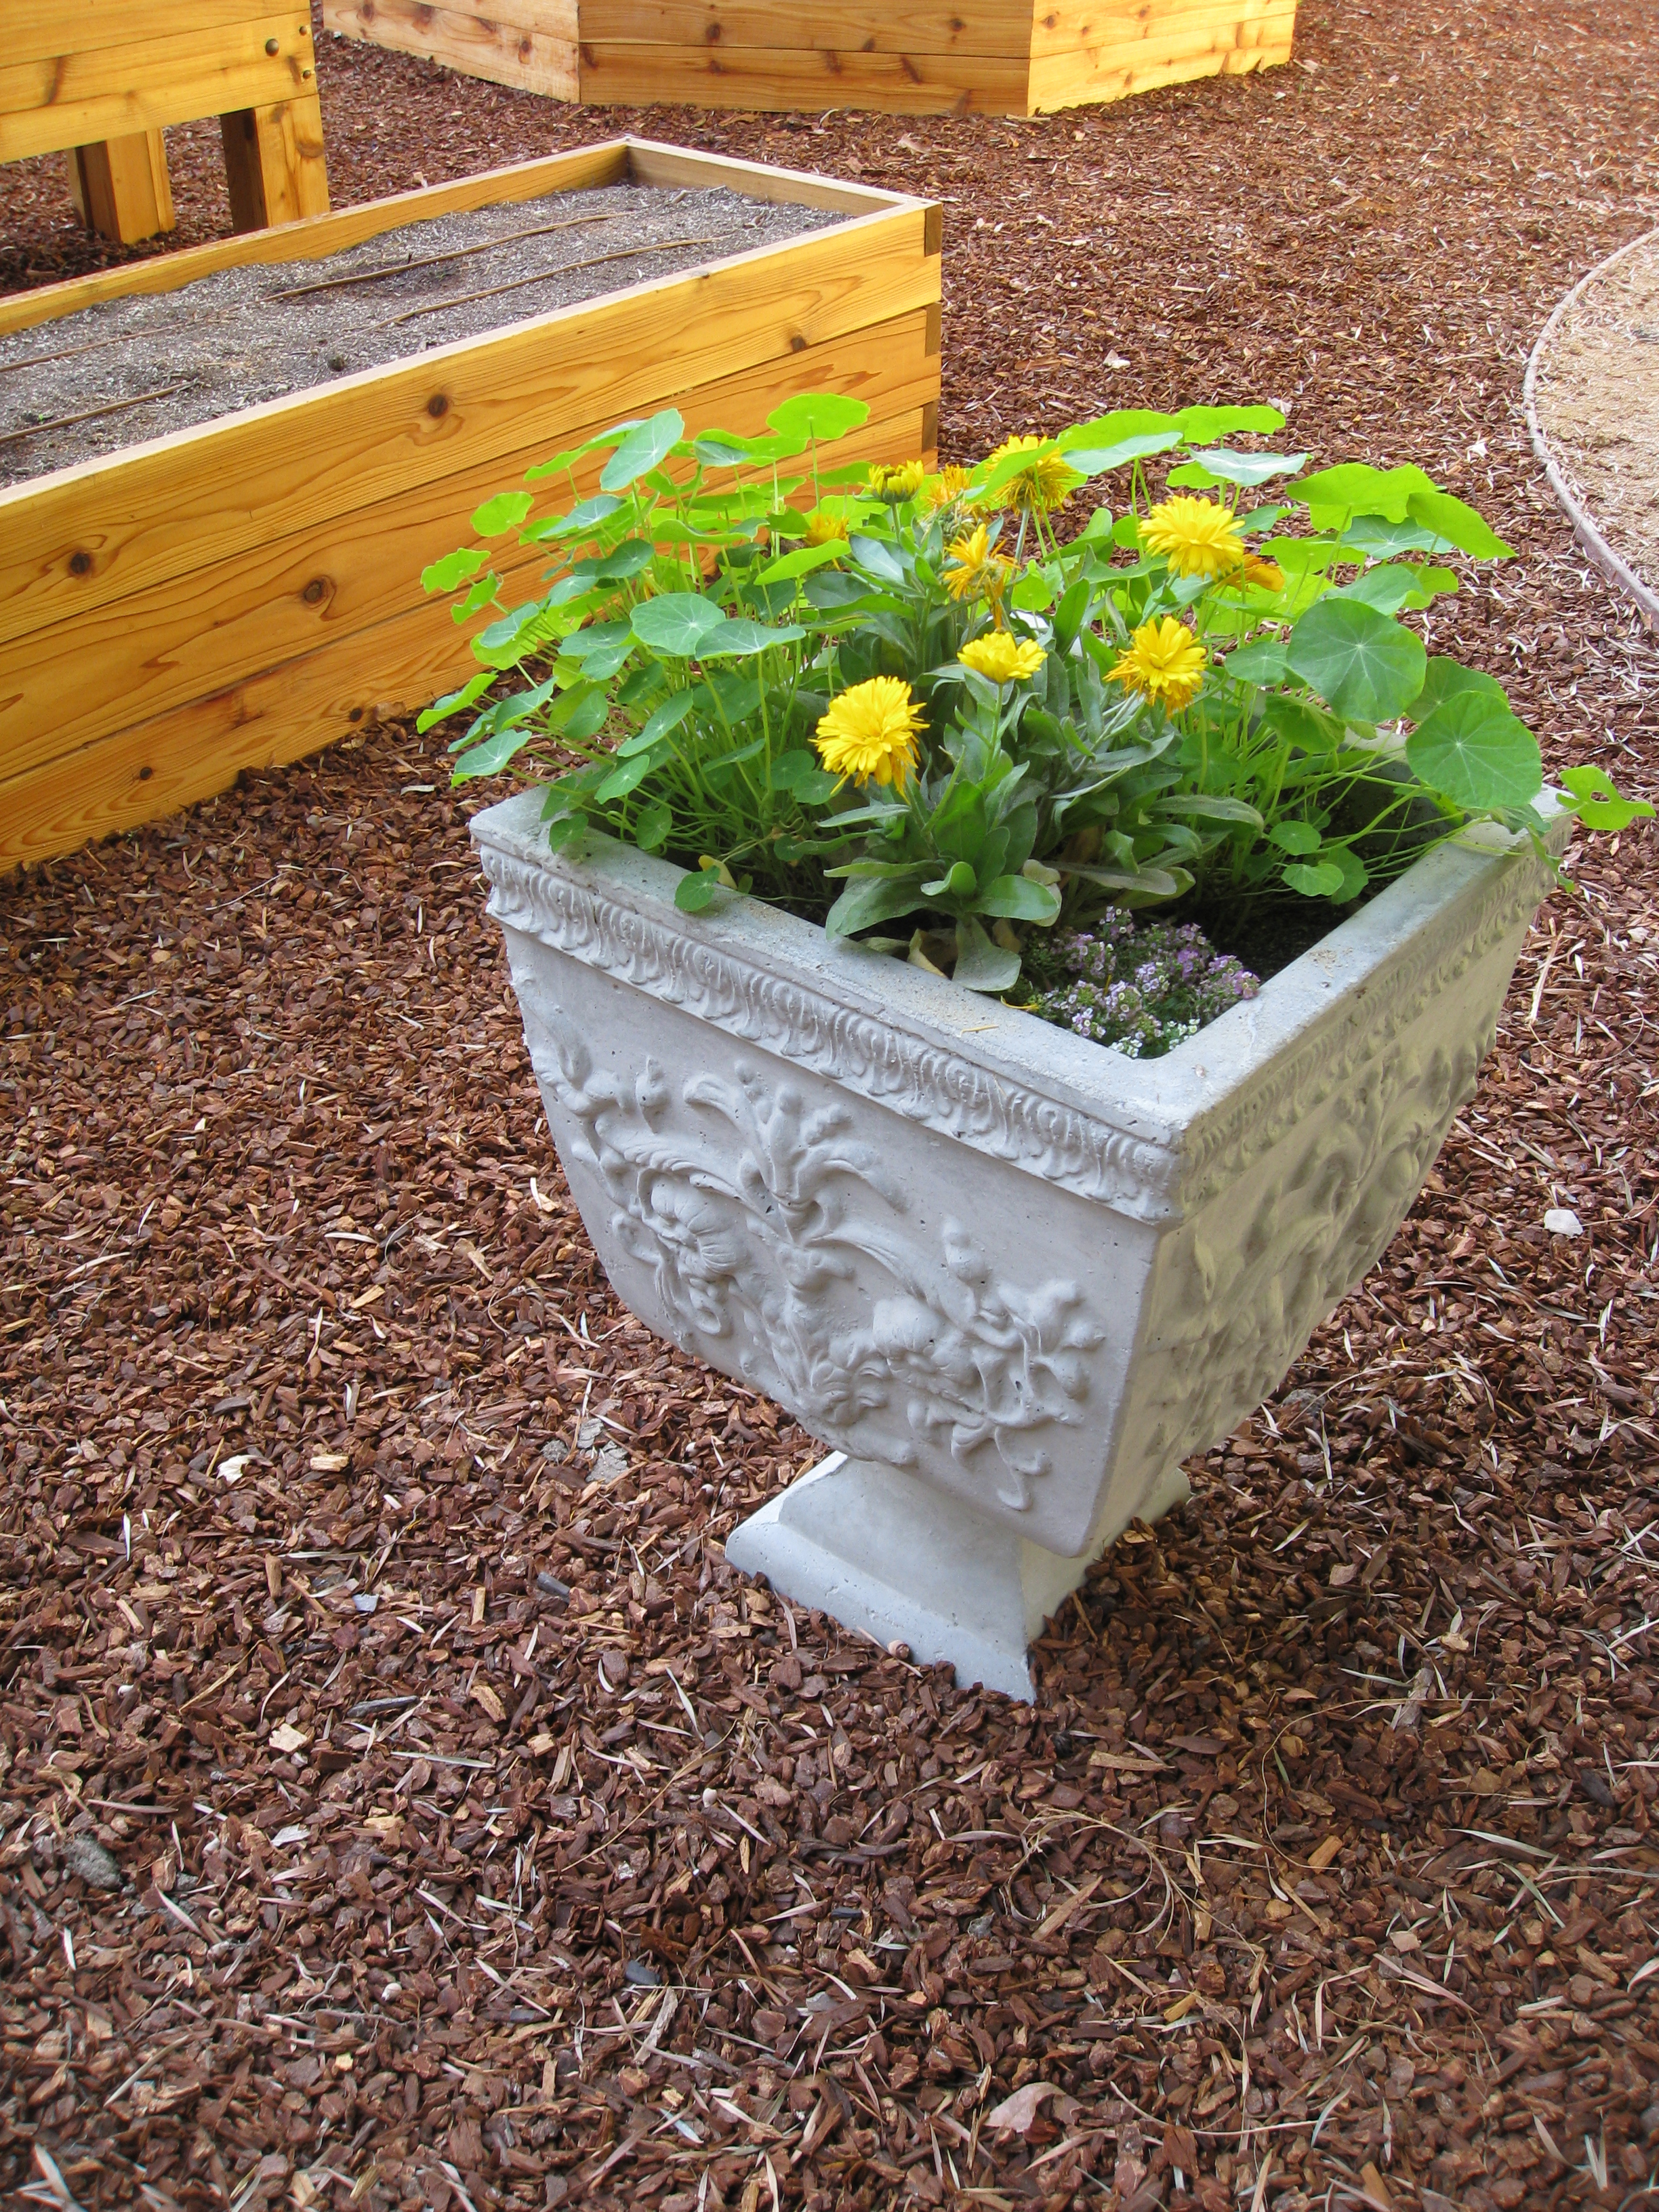 Three urns with beneficial insectaries polish the garden design.